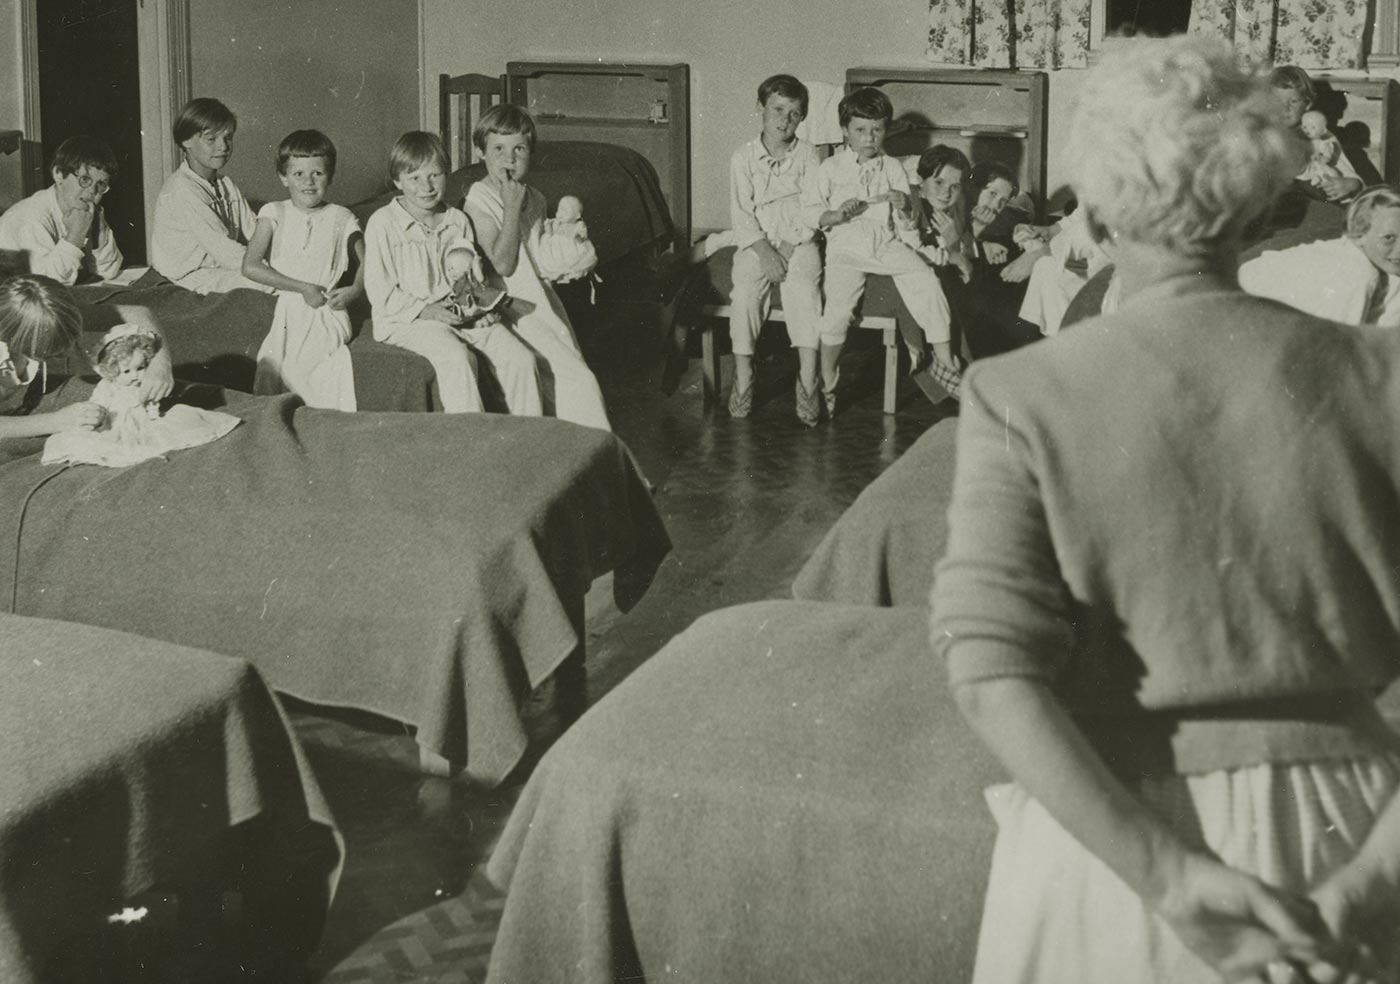 Black and white photo showing a group of 13 young girls sitting on beds watching a woman who has her back to the camera. The girls are dressed in pajamas and several of them hold dolls. - click to view larger image